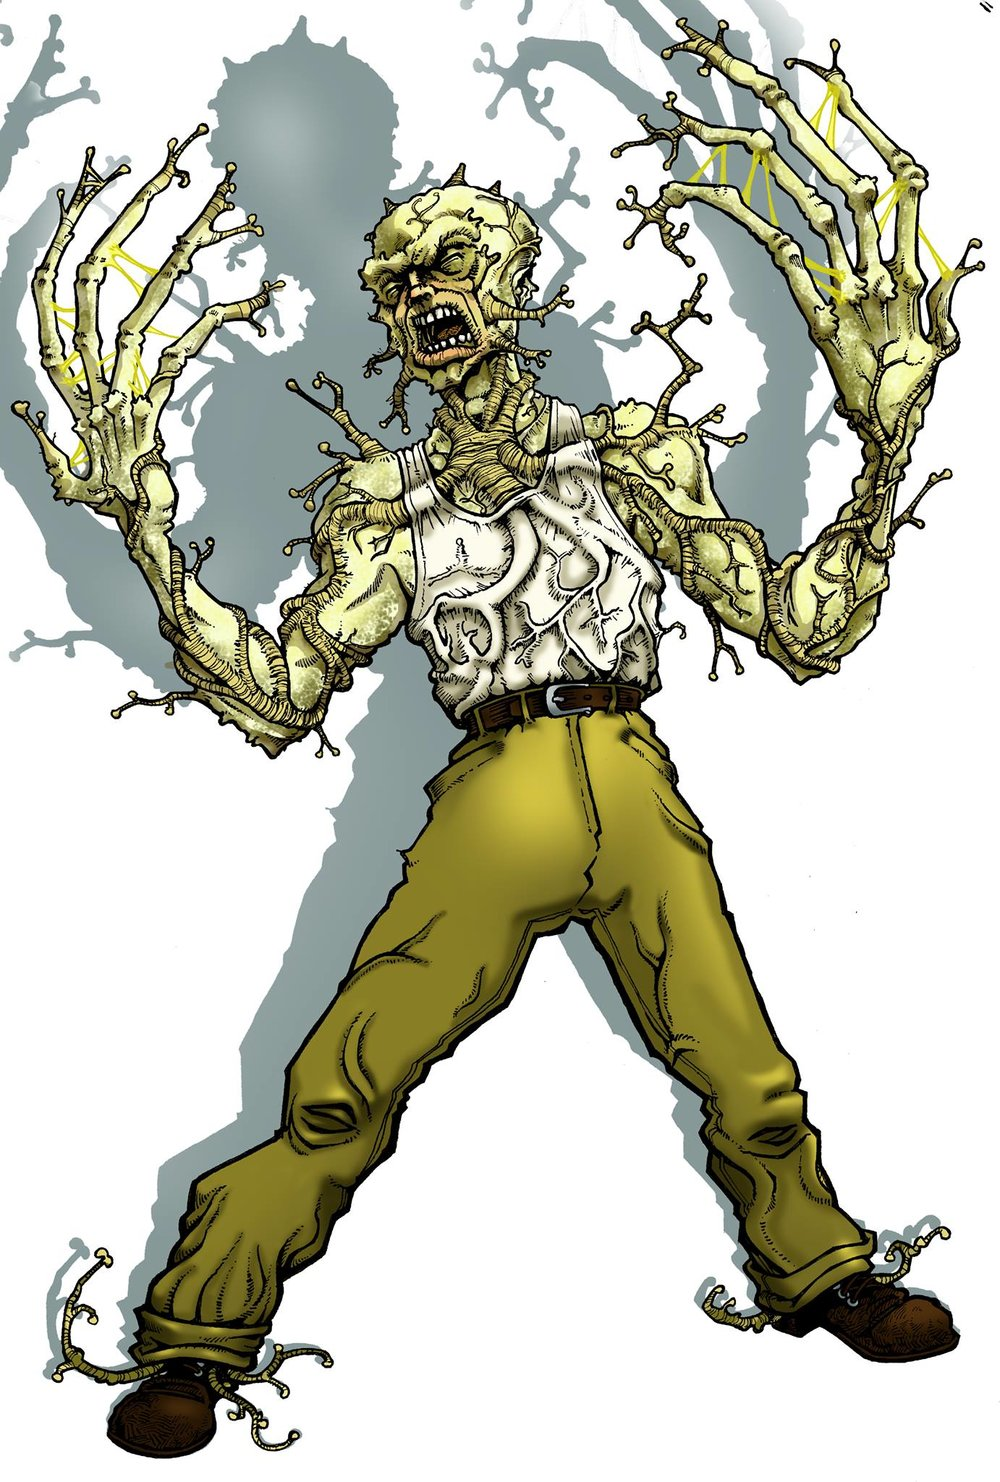 Carcino. - In an experiment gone wrong, Alphonse Carcano becomes one with the cancer that he'd tried to eradicate. He soon becomes a problem in the underworld he was exiled from.